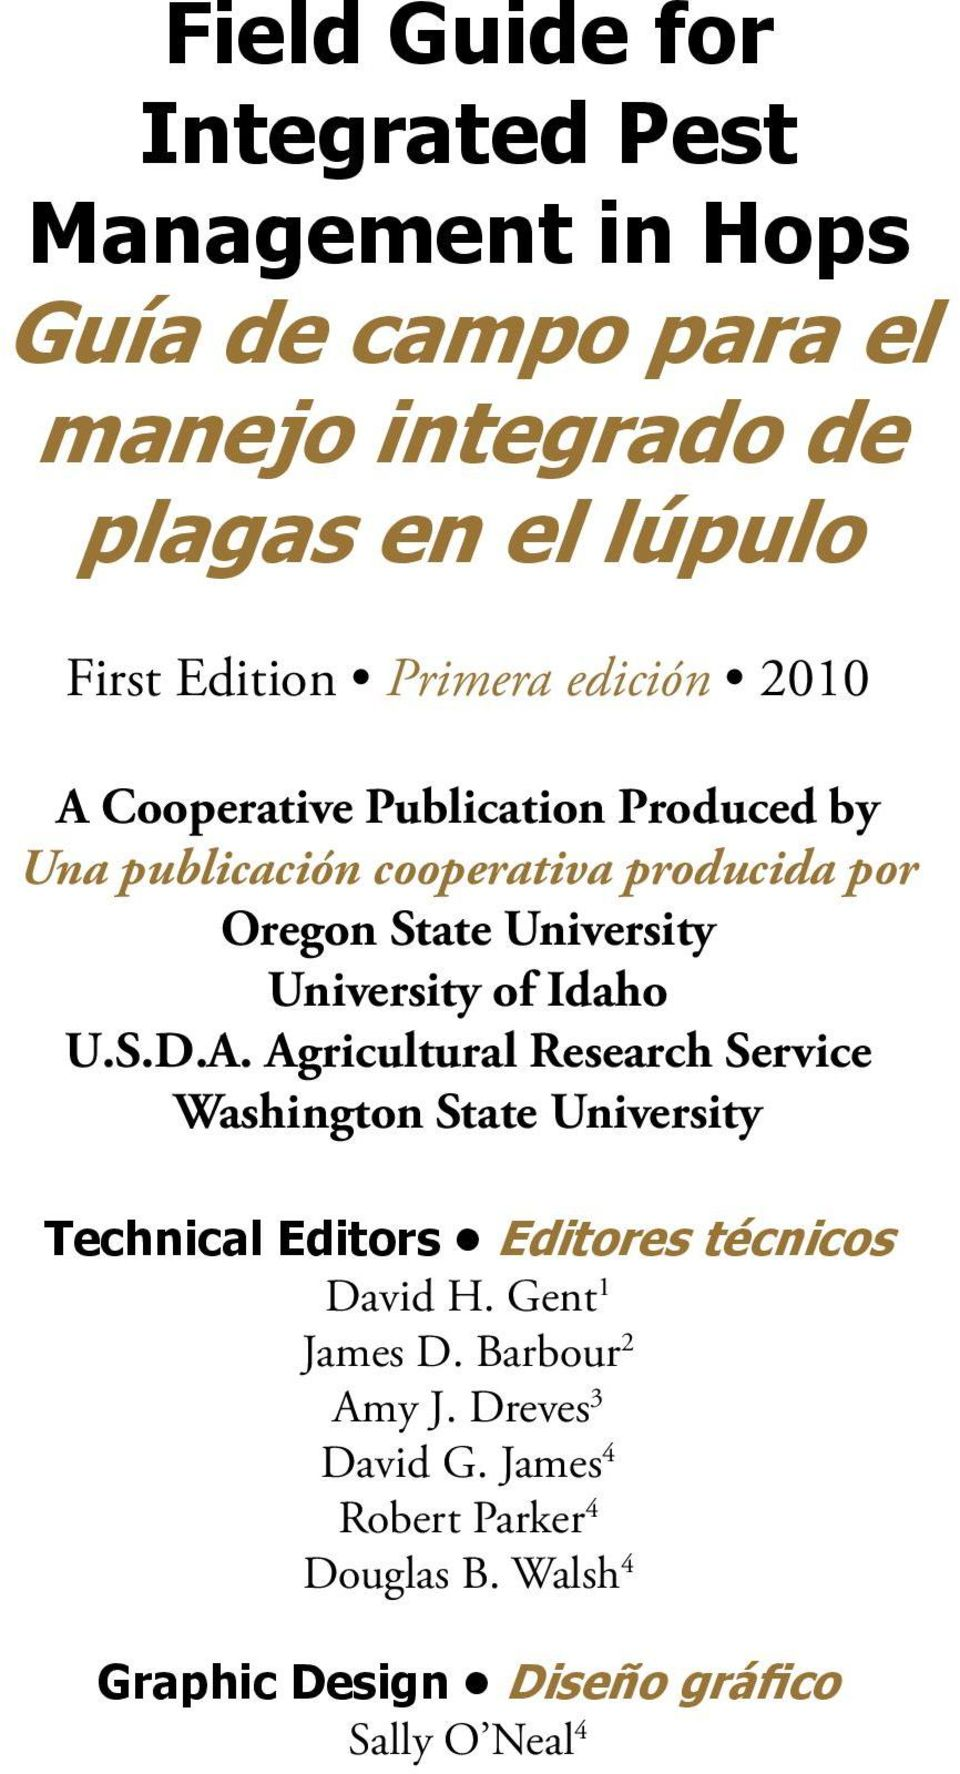 University of Idaho U.S.D.A. Agricultural Research Service Washington State University Technical Editors Editores técnicos David H.